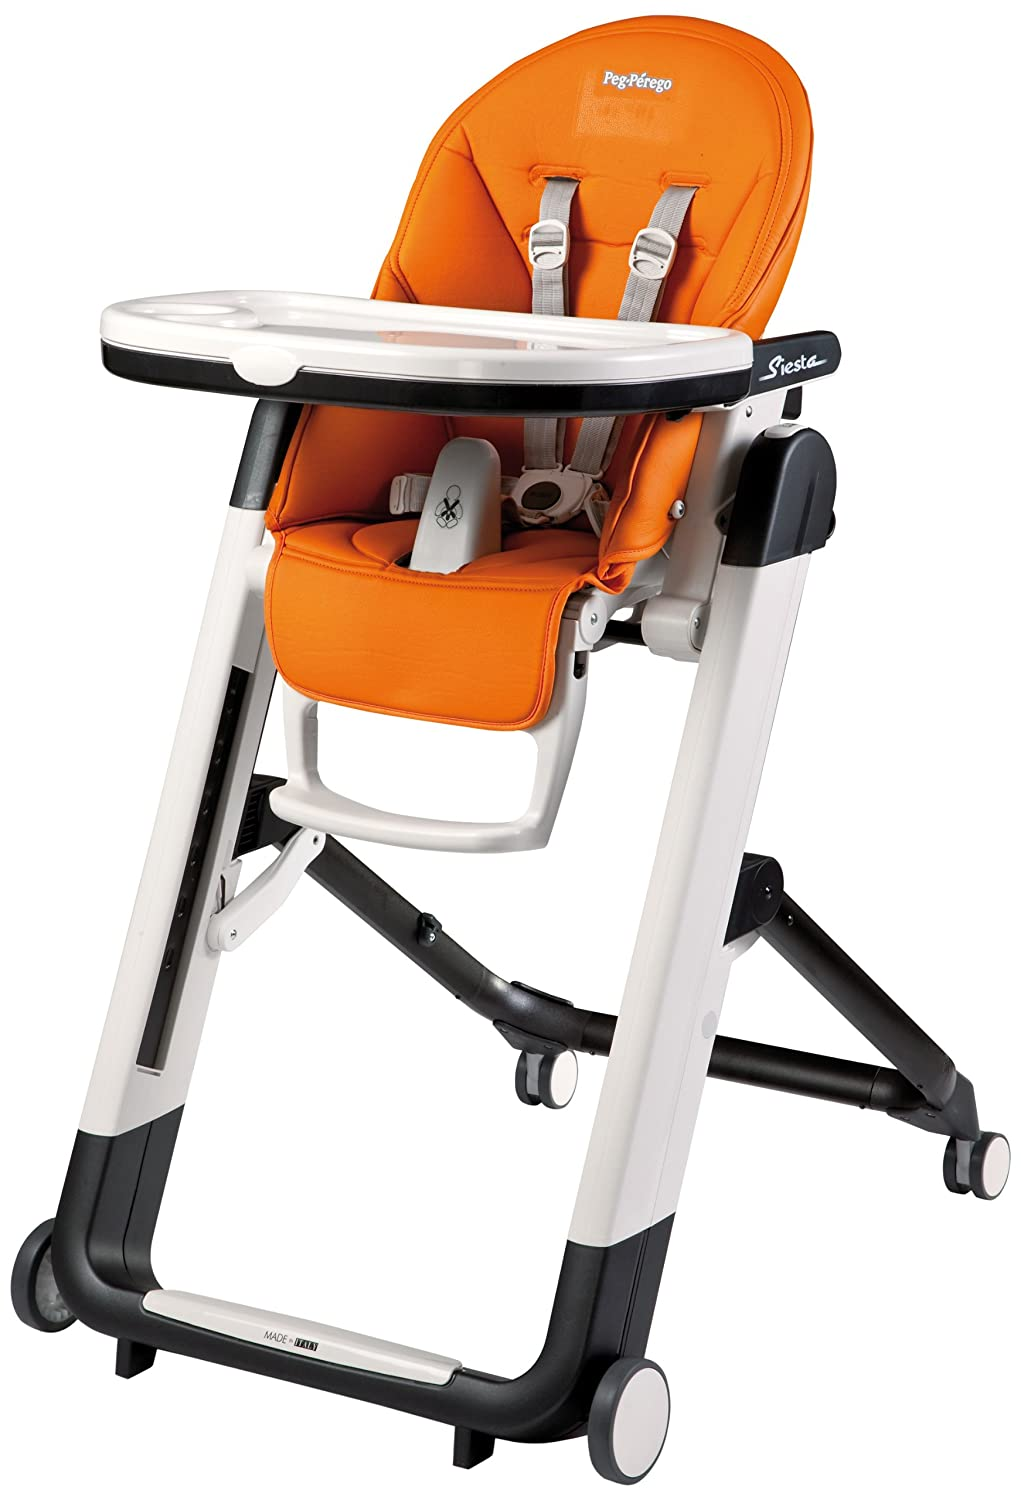 Amazon.com  Peg Perego Siesta Highchair Arancia  Childrens Highchairs  Baby  sc 1 st  Amazon.com & Amazon.com : Peg Perego Siesta Highchair Arancia : Childrens ...